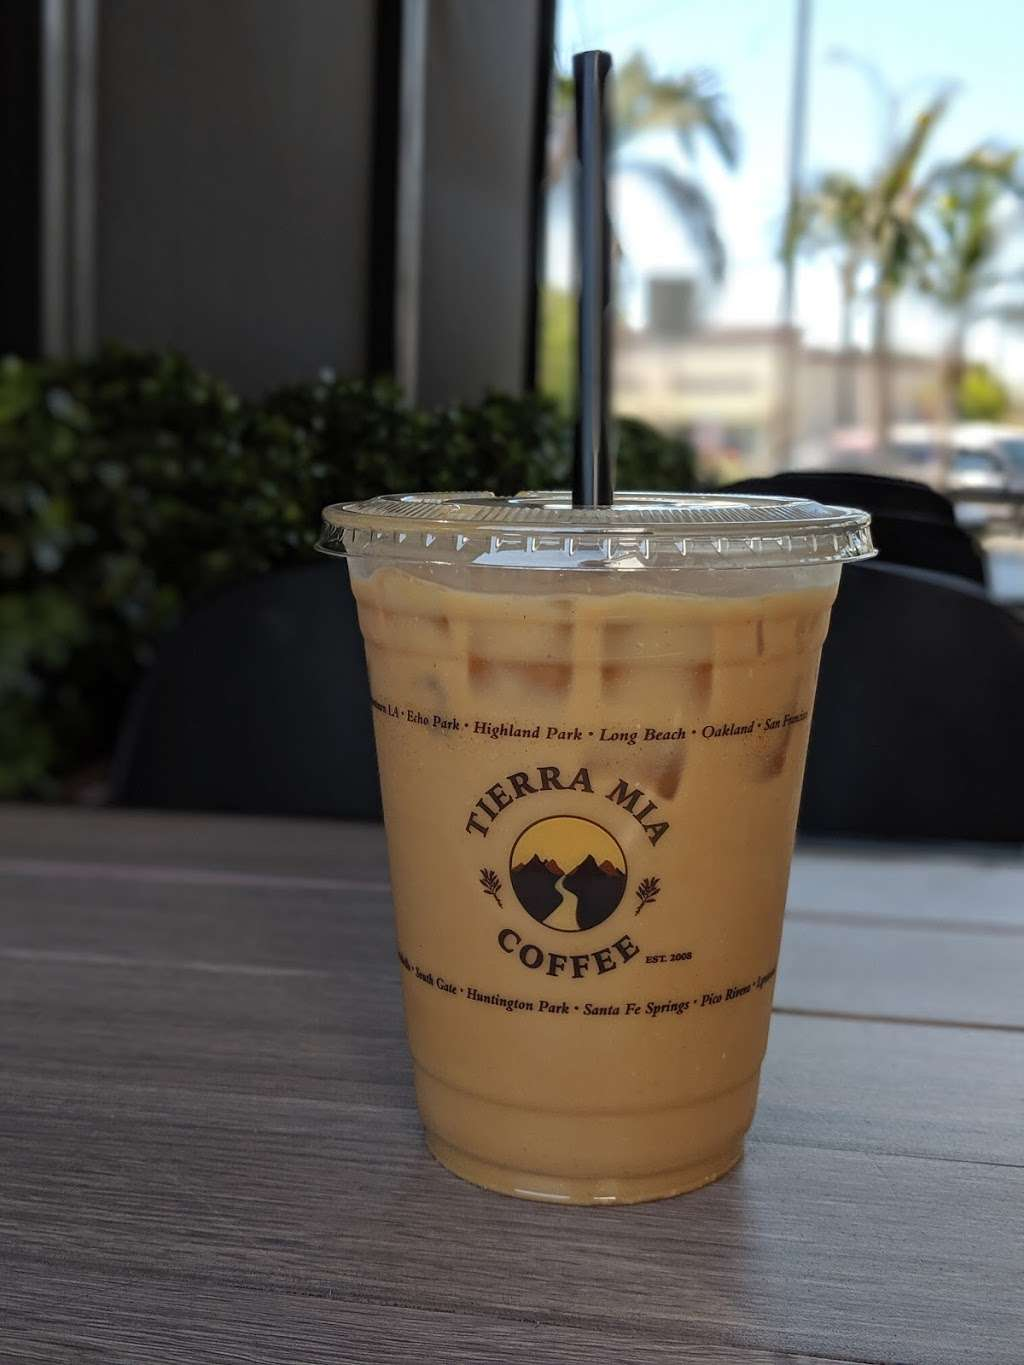 Tierra Mia Coffee - cafe  | Photo 9 of 9 | Address: 3748 Peck Rd, El Monte, CA 91731, USA | Phone: (626) 416-5339